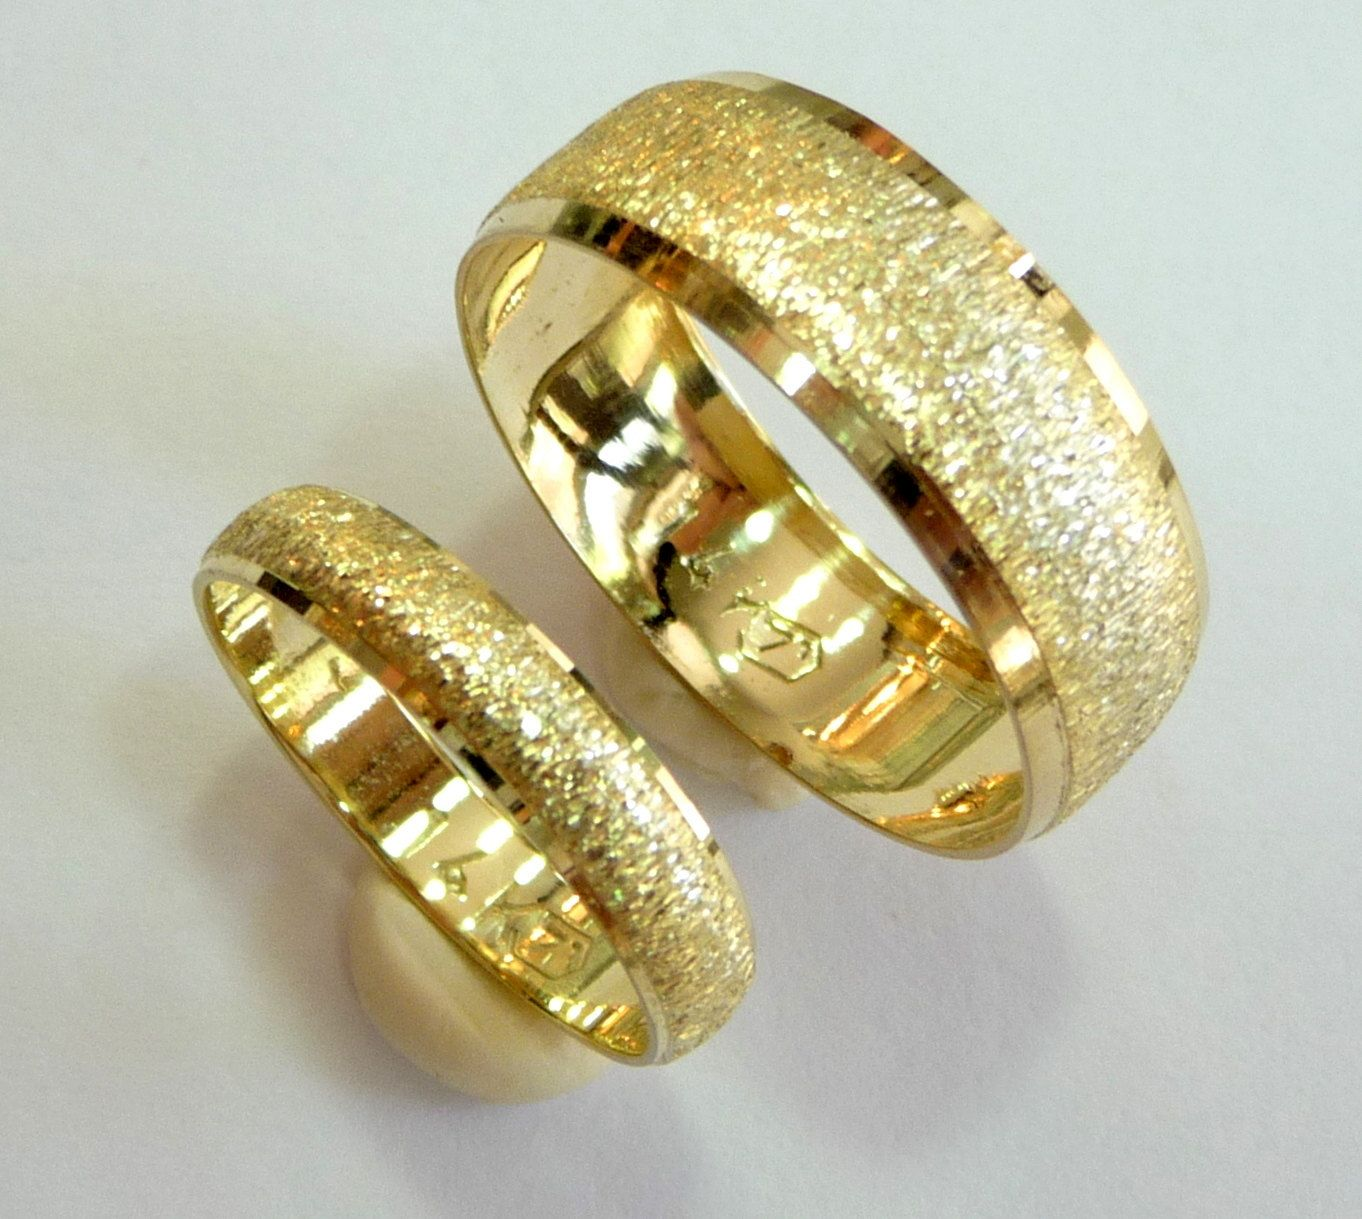 16 Wedding bands set gold wedding rings for men and women